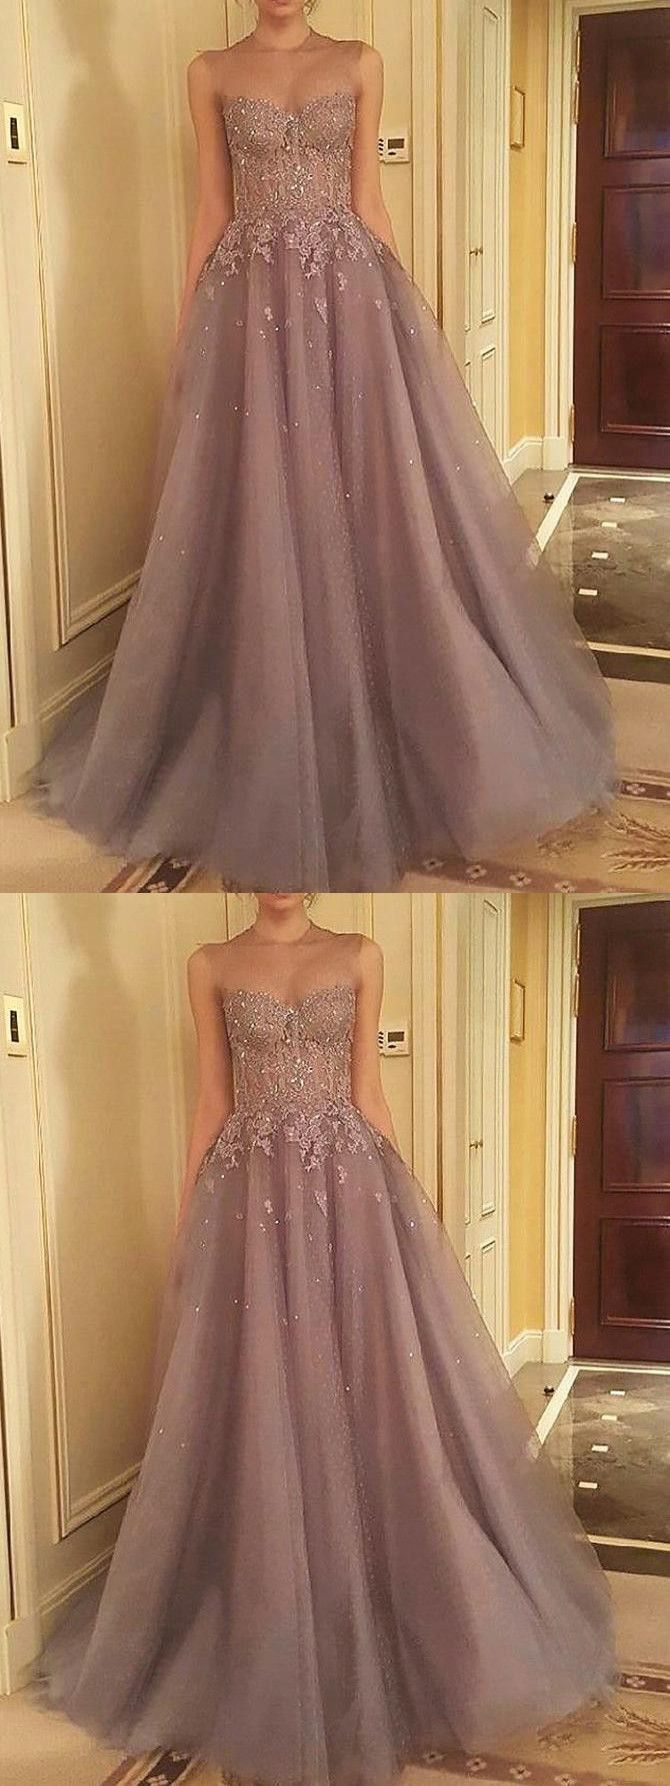 Tulle Appliques Prom Dress, Sleeveless Evening Dresses, Sexy Long Prom Dresses P0019#PromDress#PromDresses#tulleprom